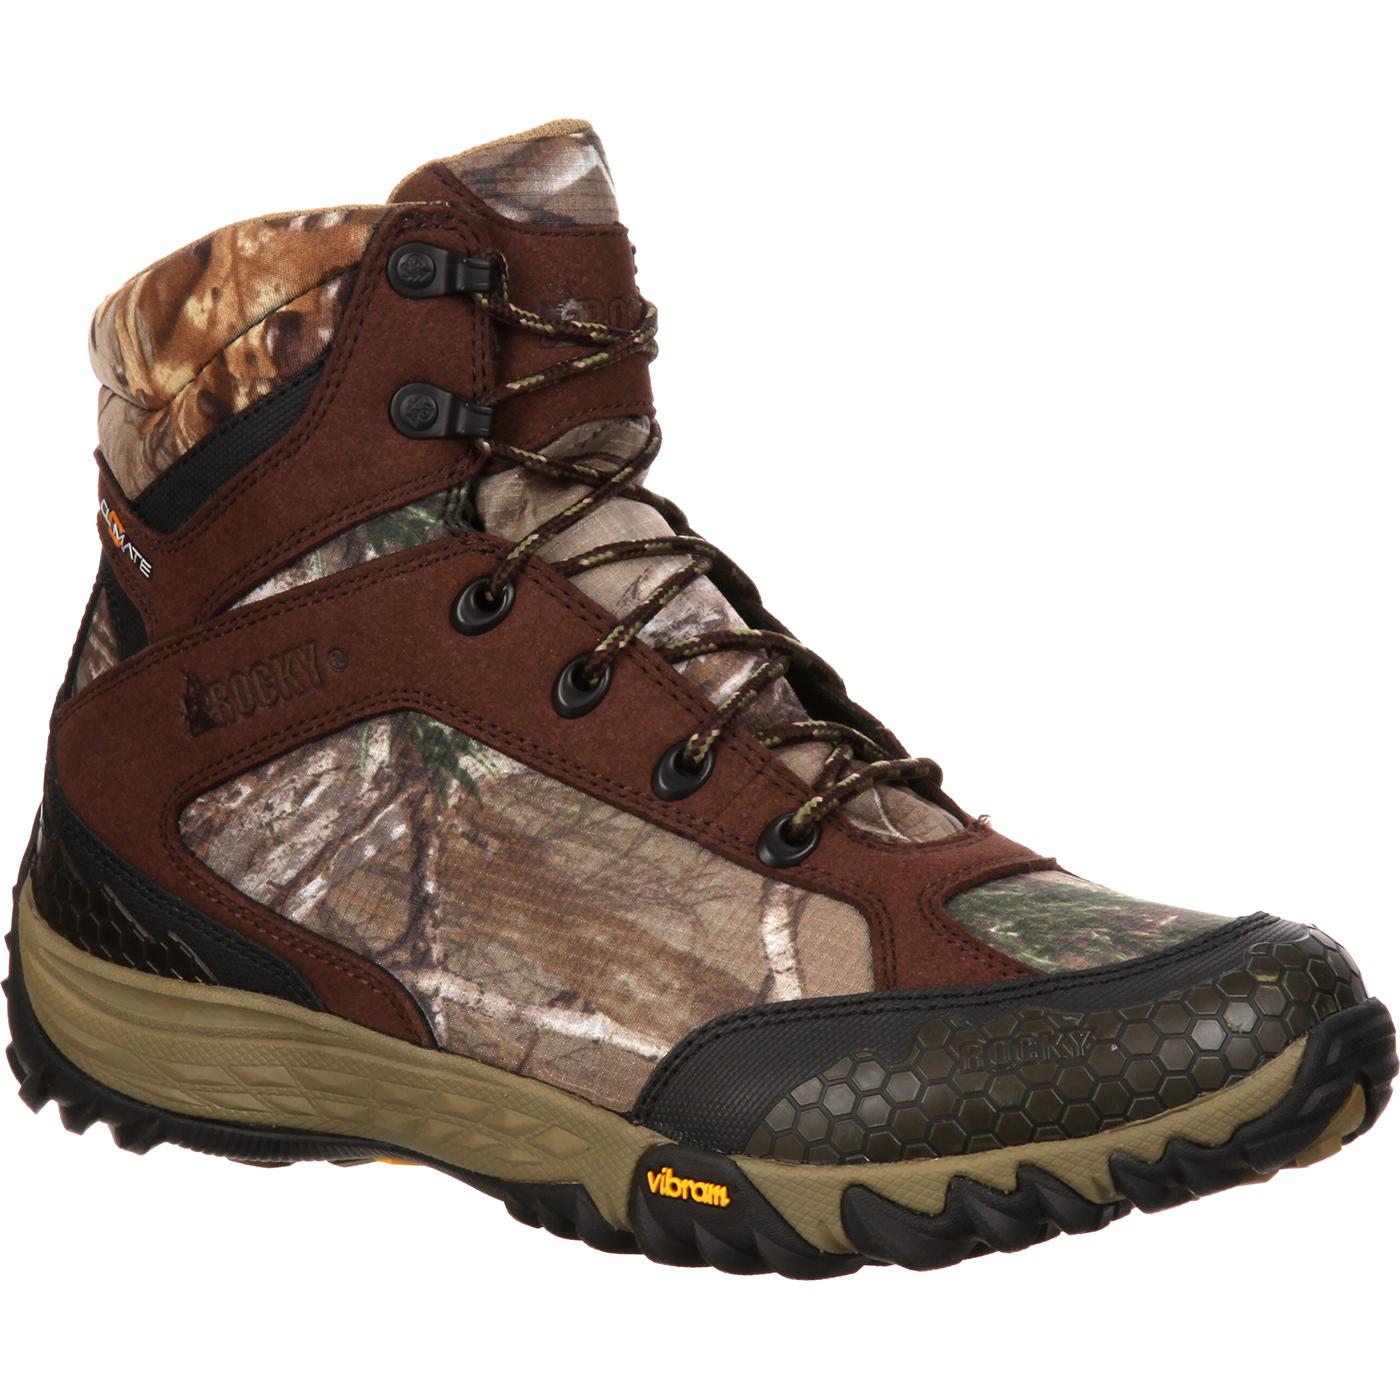 Rocky Silenthunter Waterproof Insulated Boots Rkys113